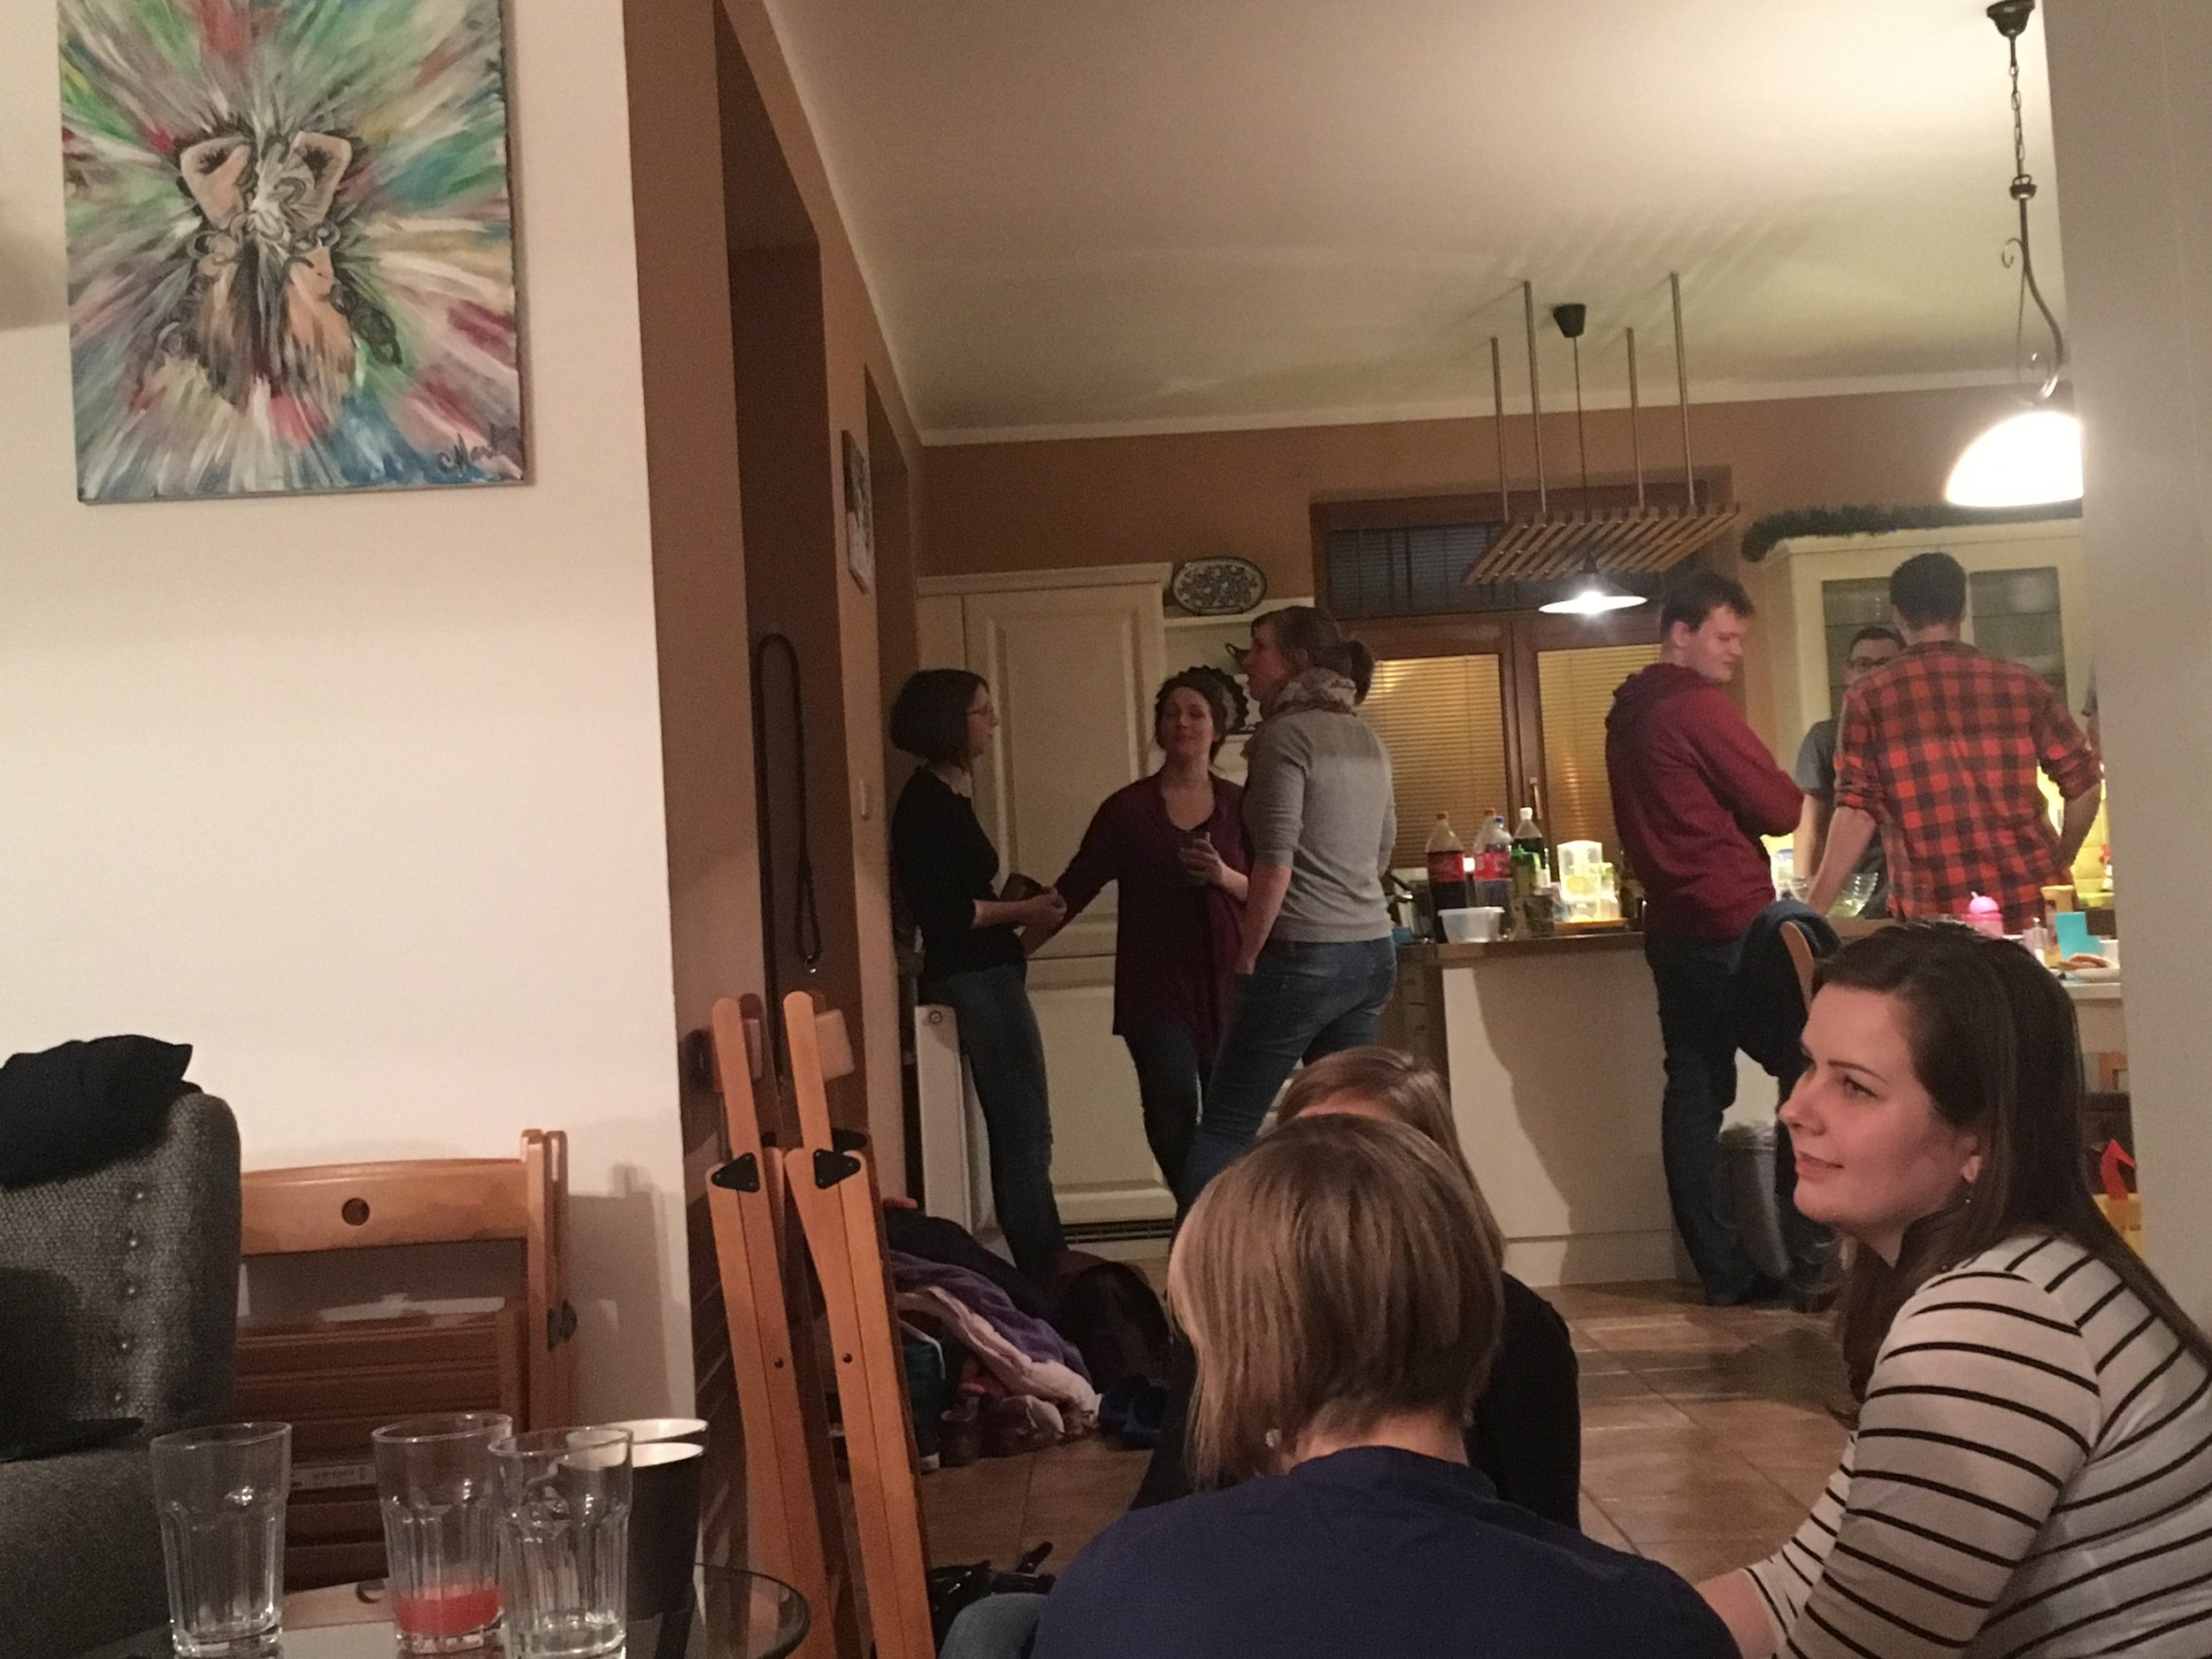 The Christmas party with about 55 people in the house made for a memorable night!